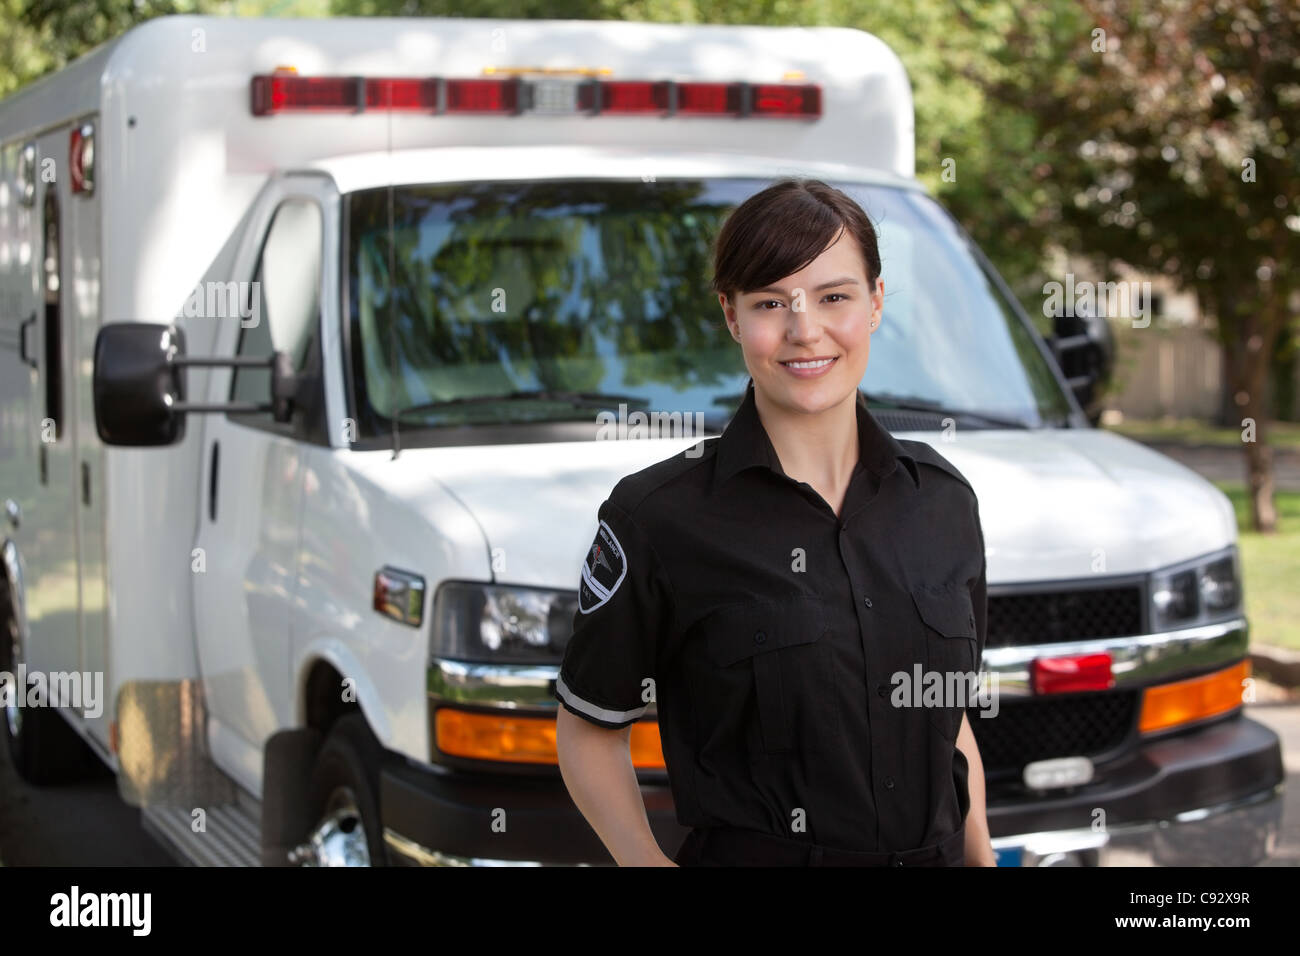 Portrait of attractive paramedic standing in front of ambulance - Stock Image